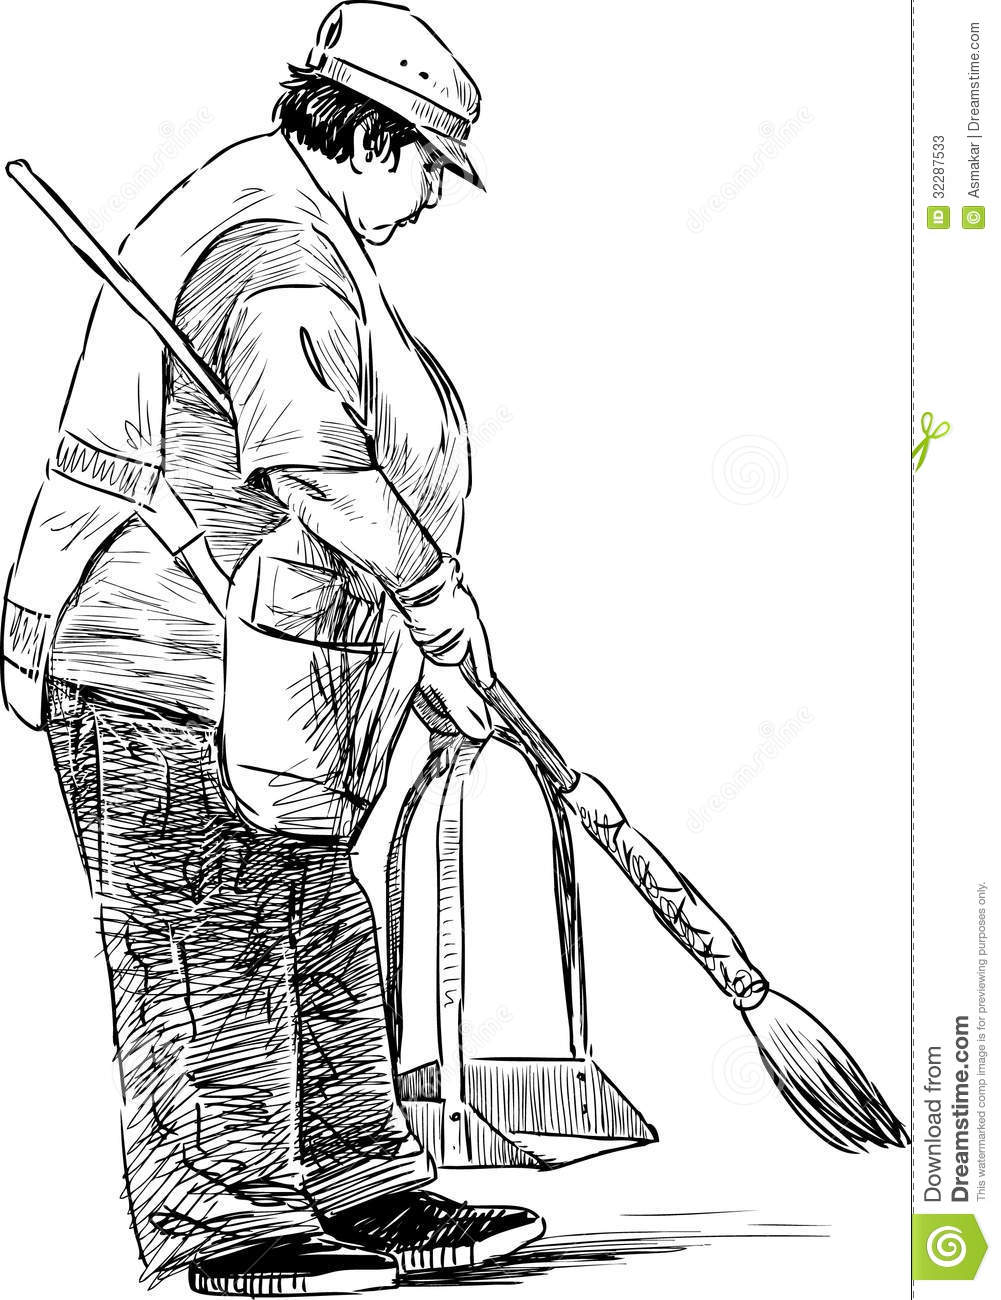 Cleaning woman stock vector. Illustration of keeper, yard